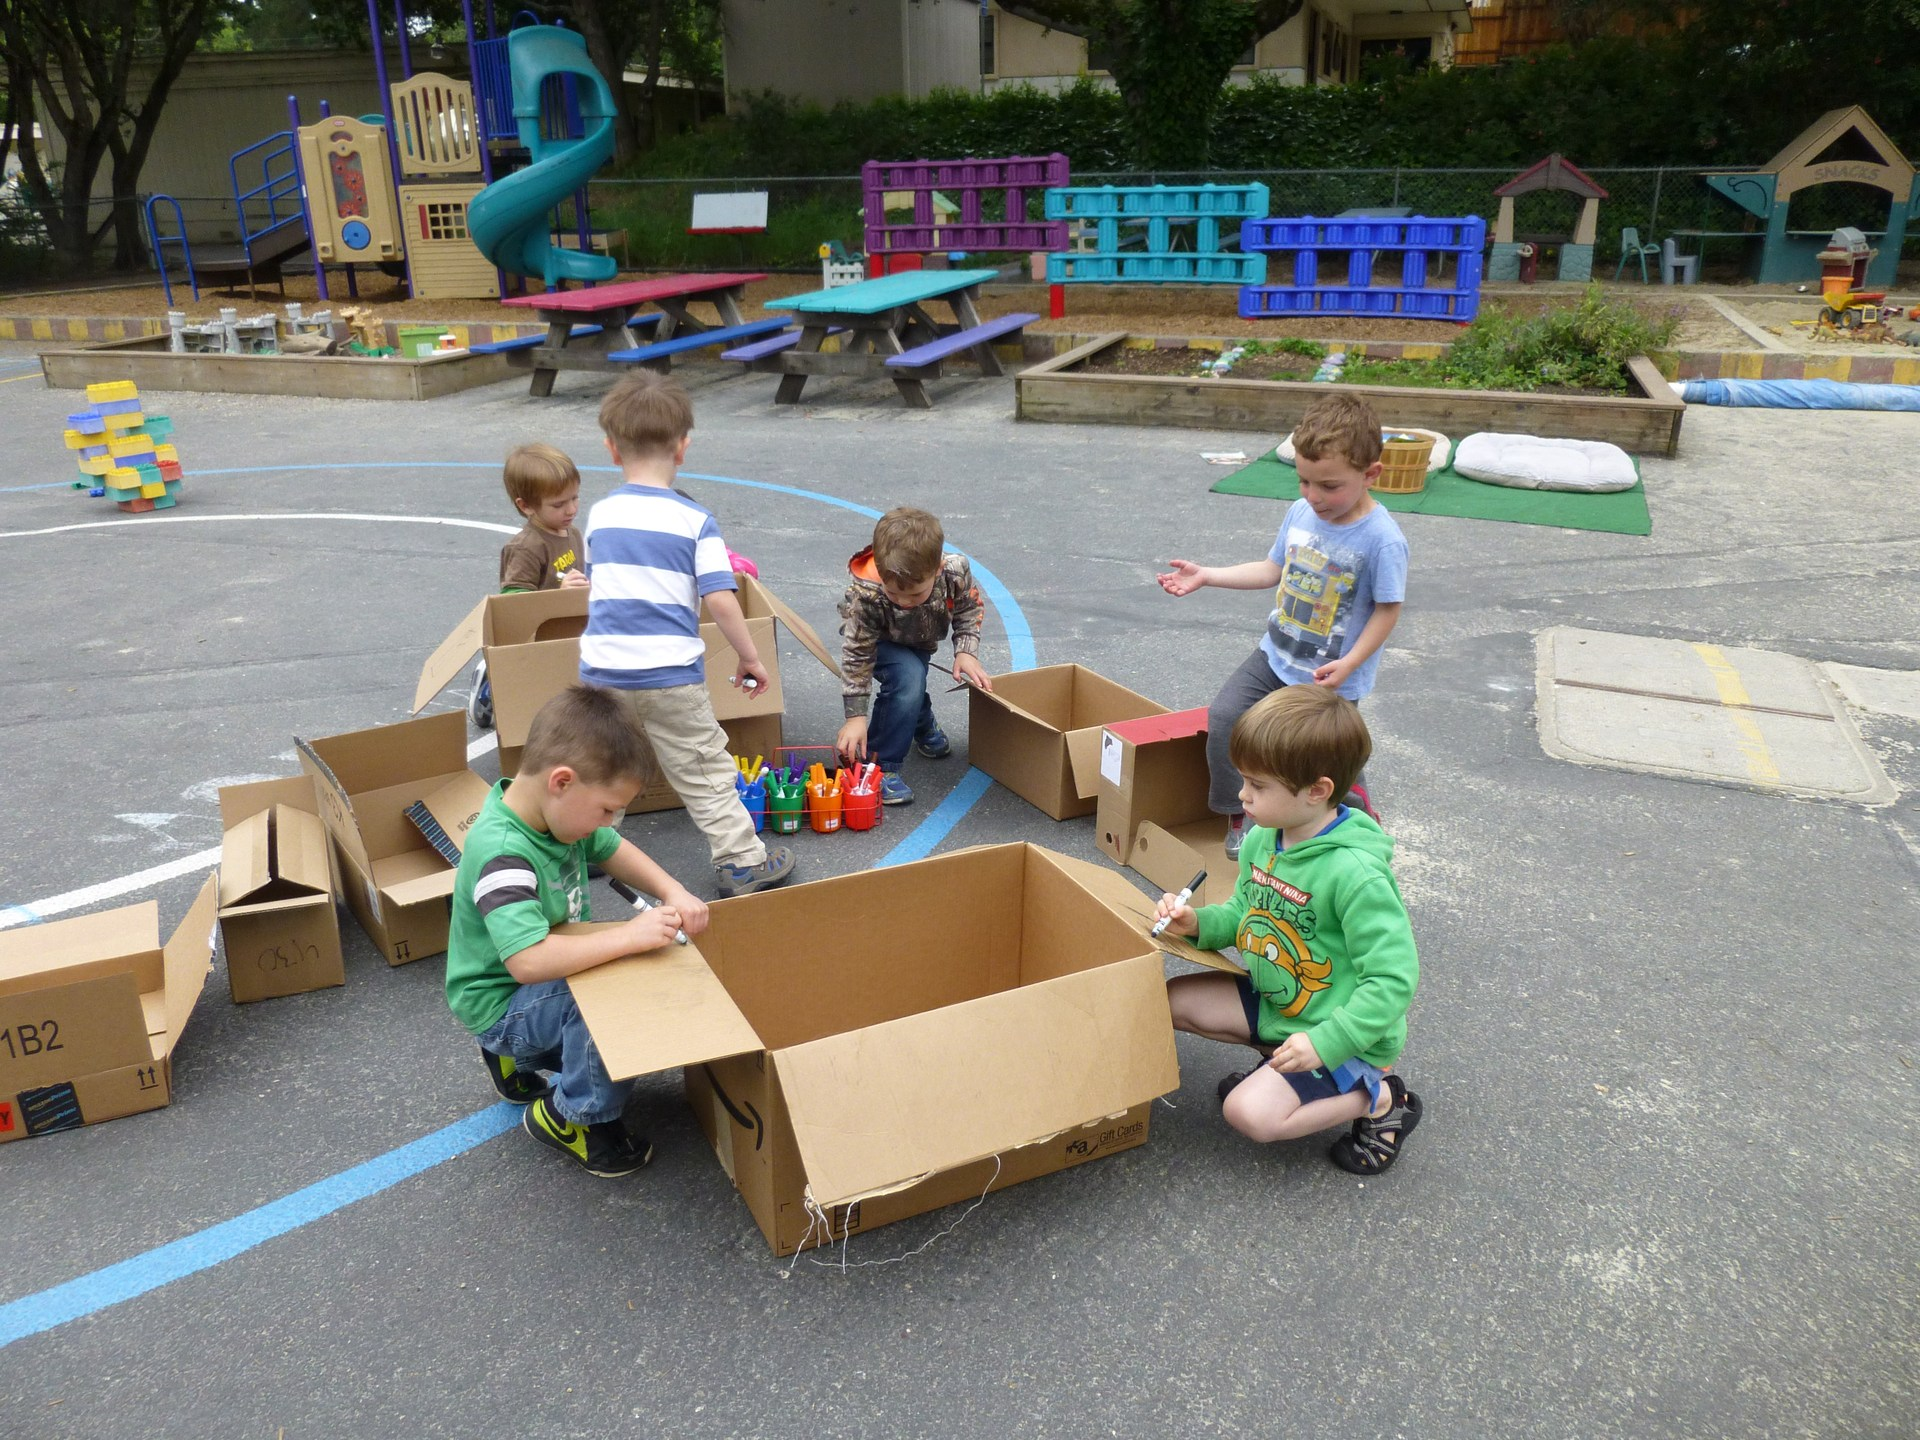 Students playing with boxes